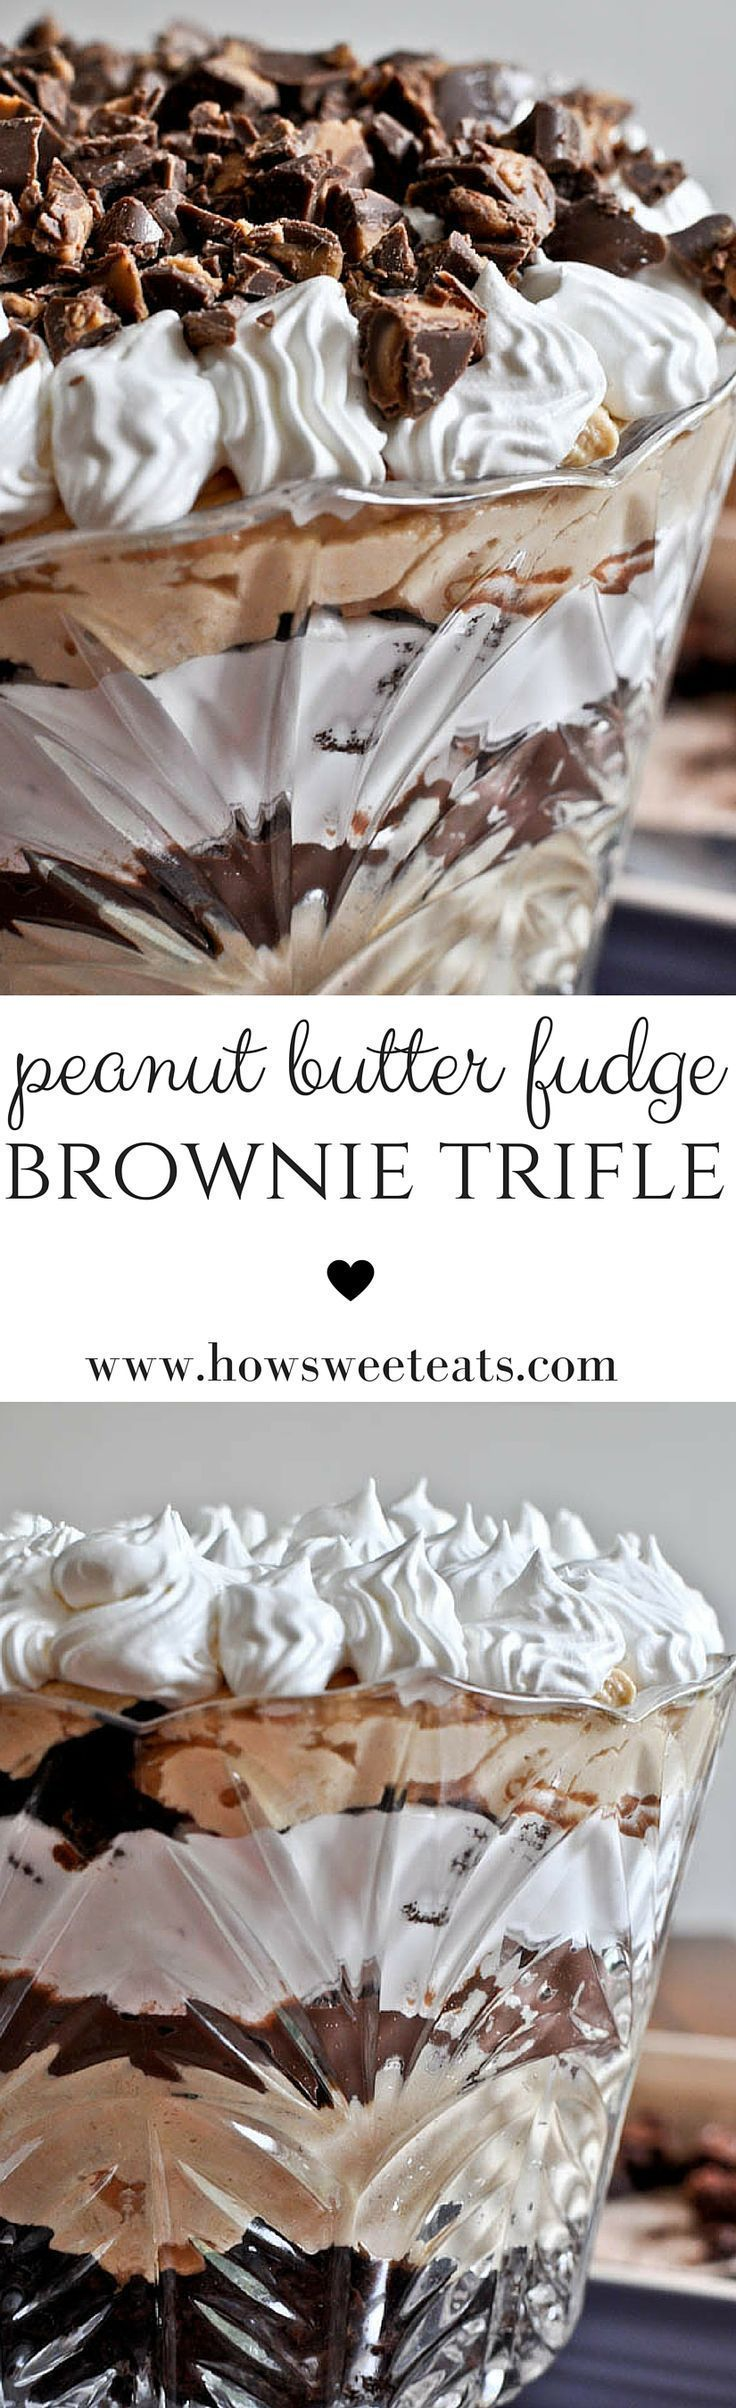 Peanut Butter Fudge Brownie Trifle. - How Sweet Eats